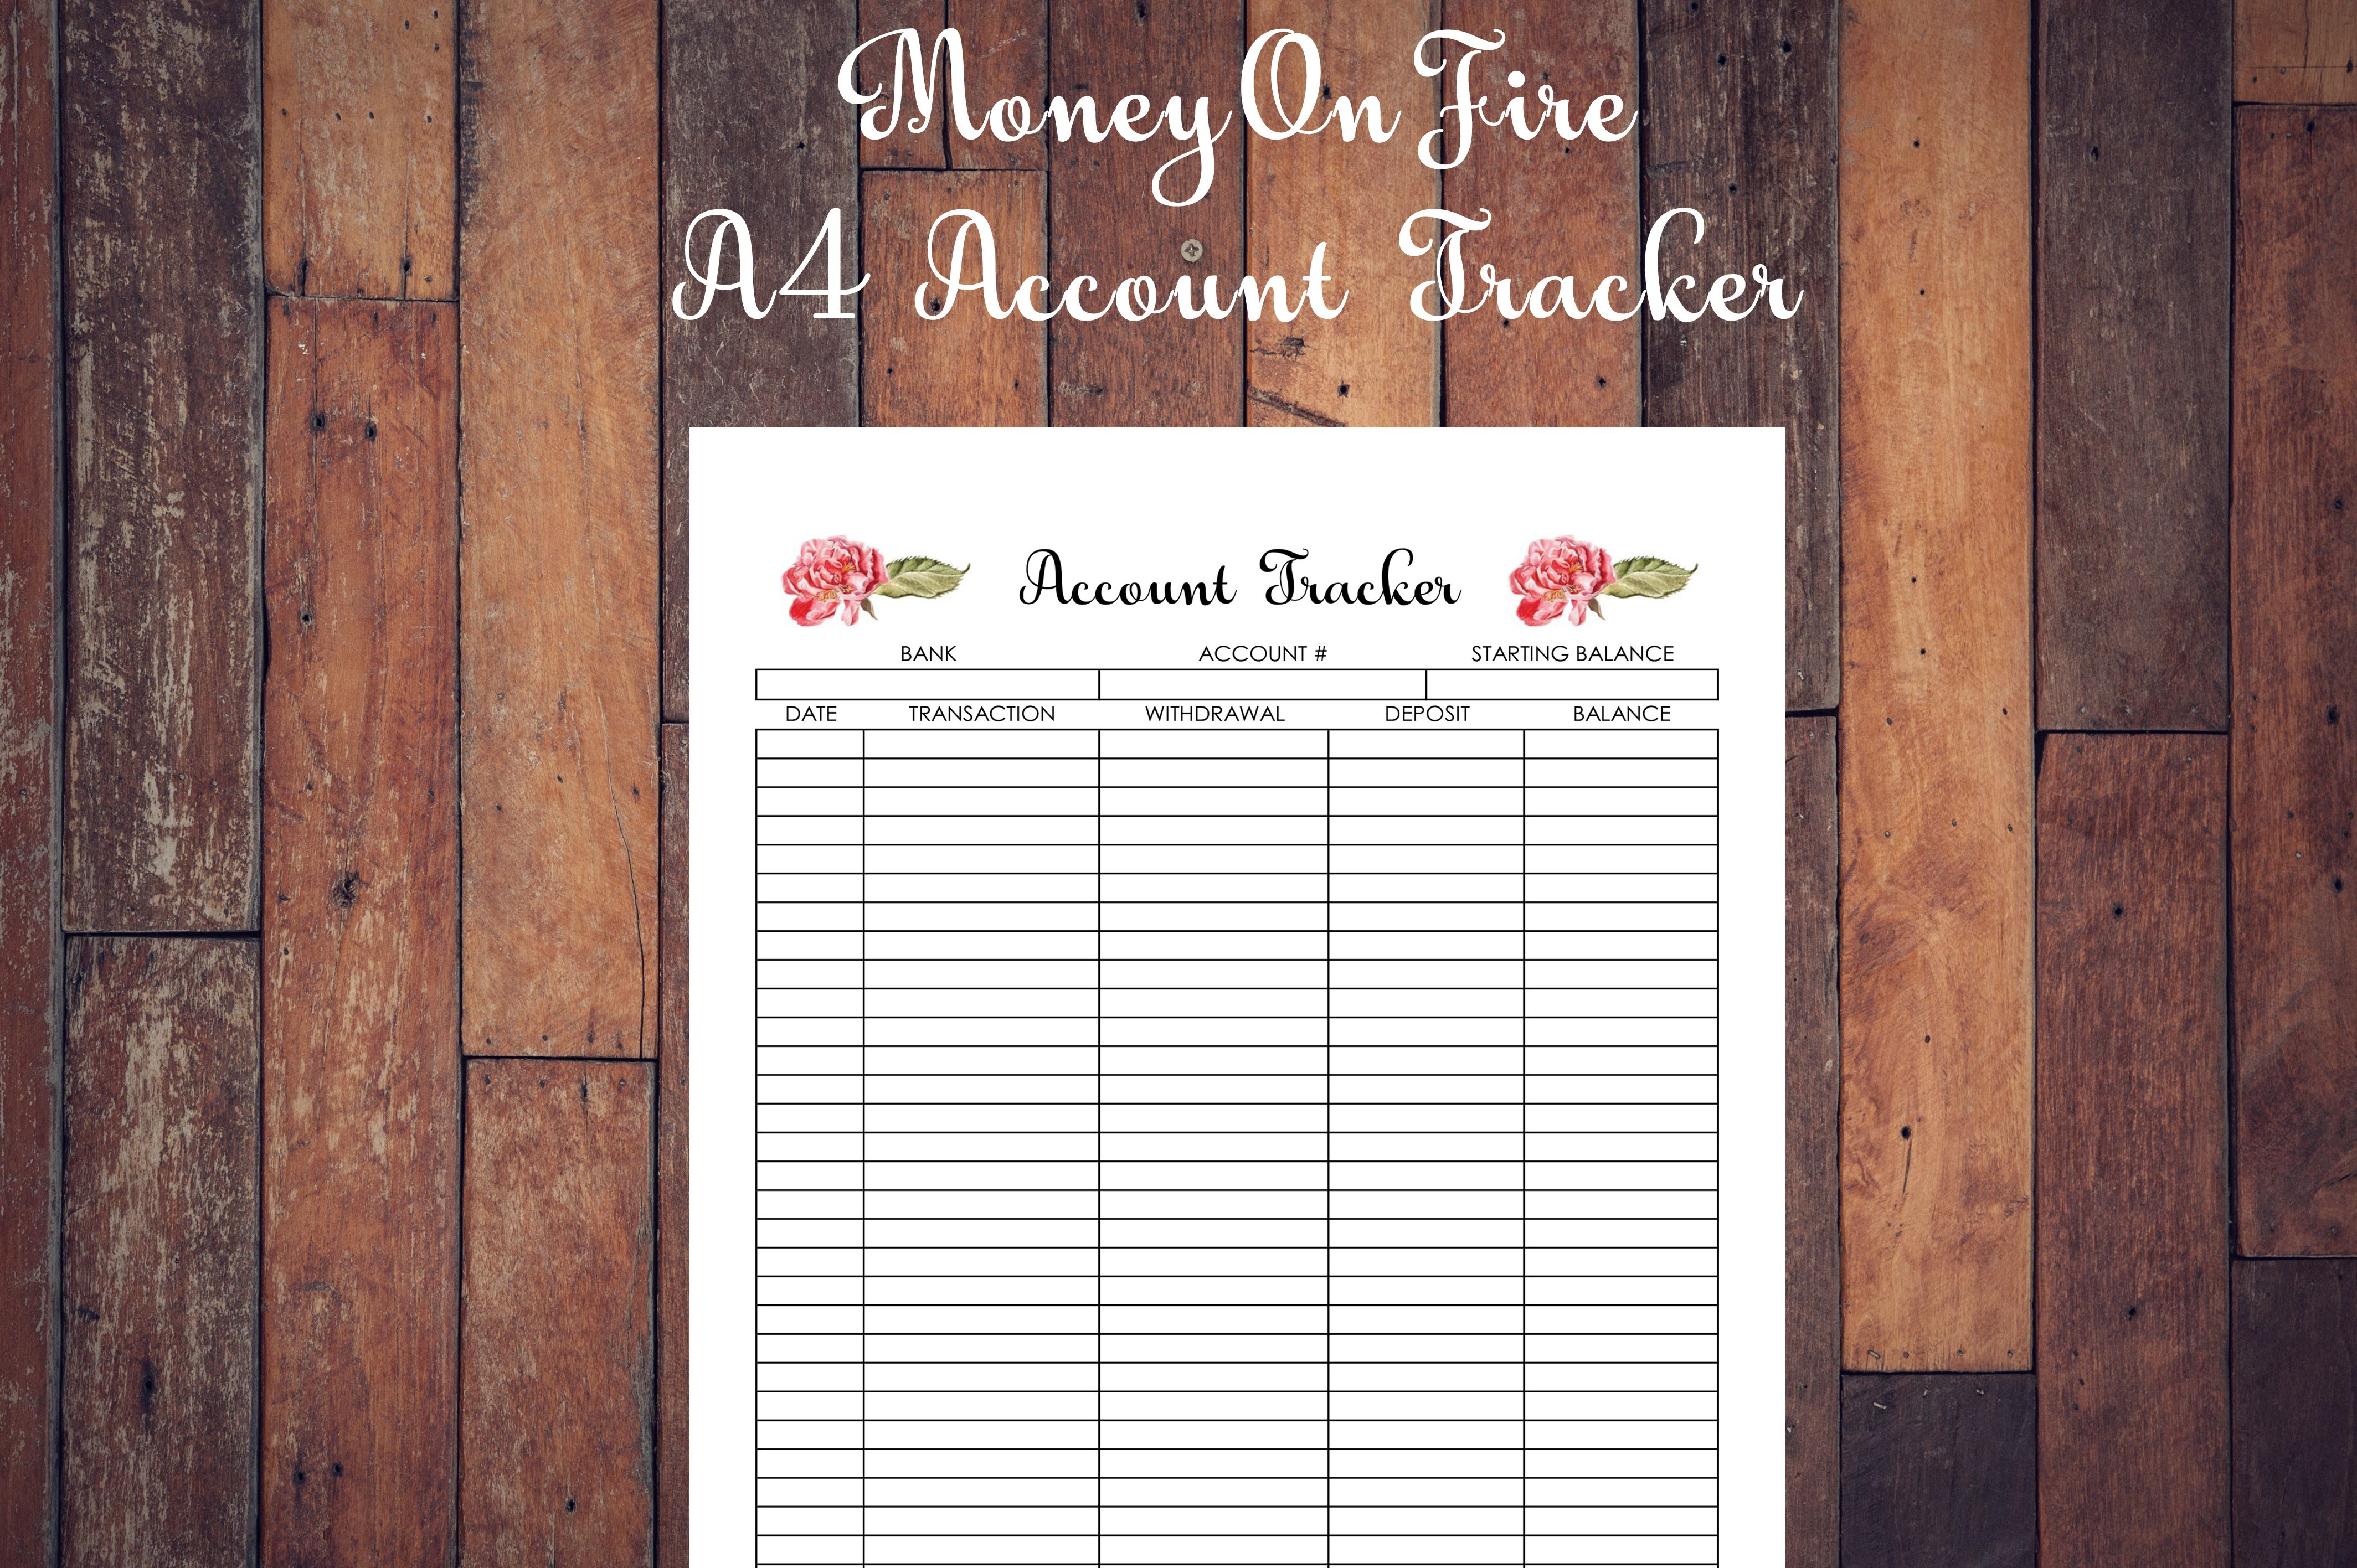 Account Tracker Printable Etsyprint Etsyprintable